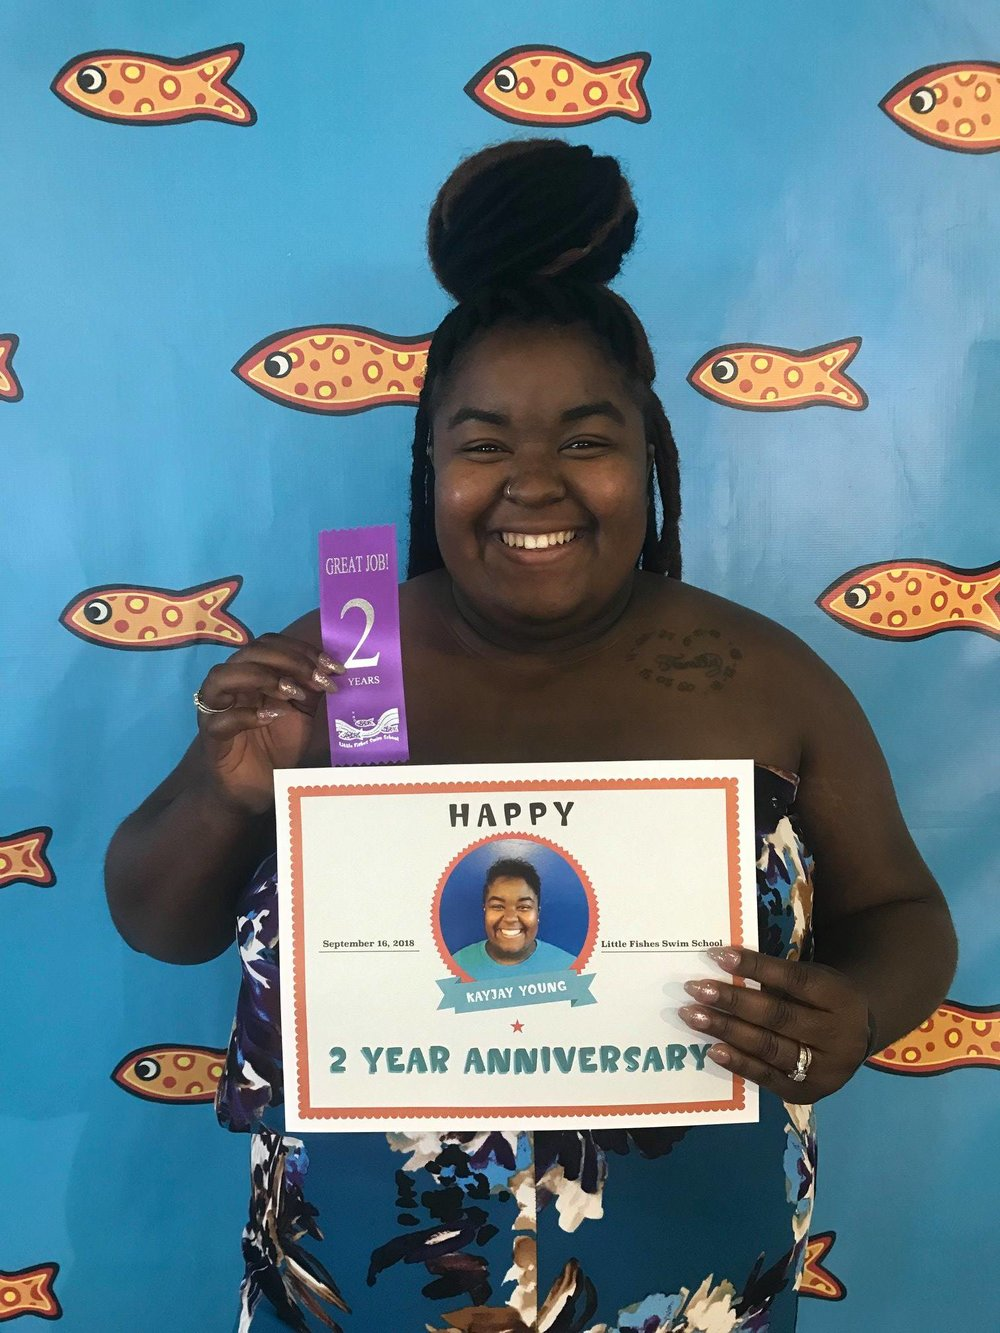 Last month we celebrated KayJay's 2 year fish-iversary!